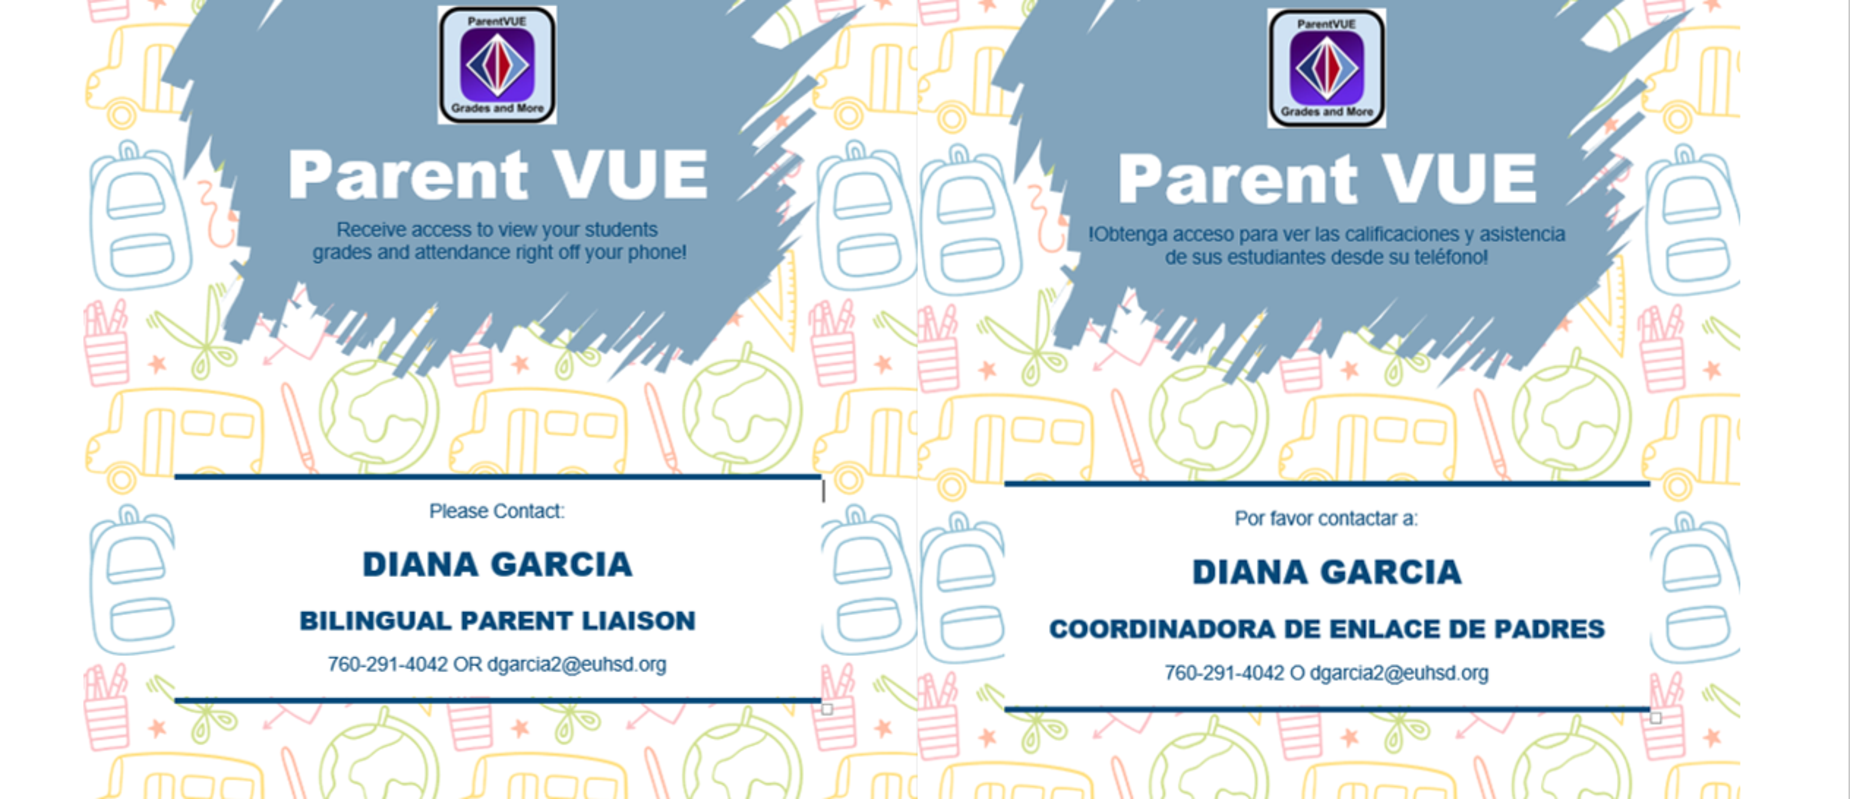 ParentVue Access Help from Bilinual Parent Liaison